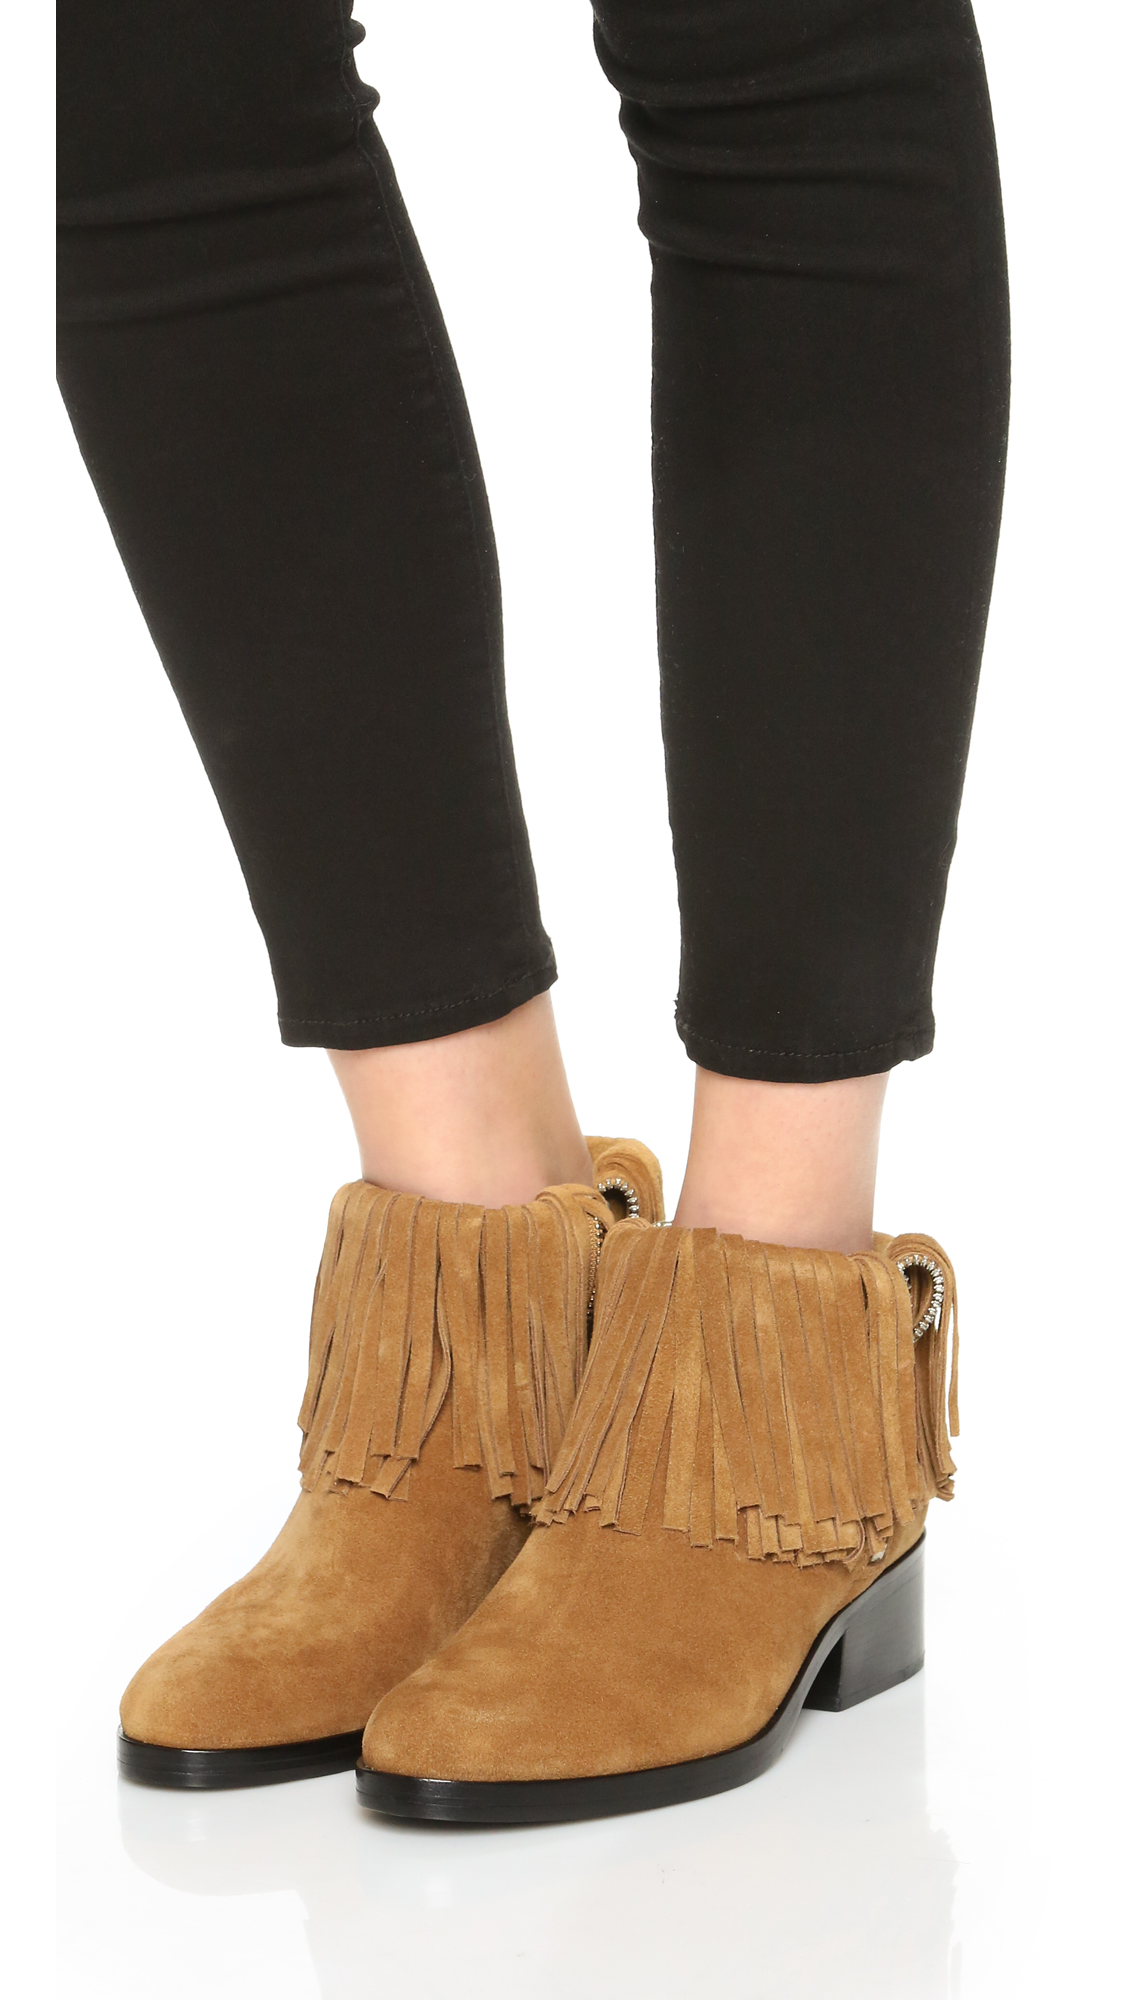 3.1 Phillip Lim Fringe Ankle Boots brand new unisex discount best sale pictures for sale s1nuO7d1Mi